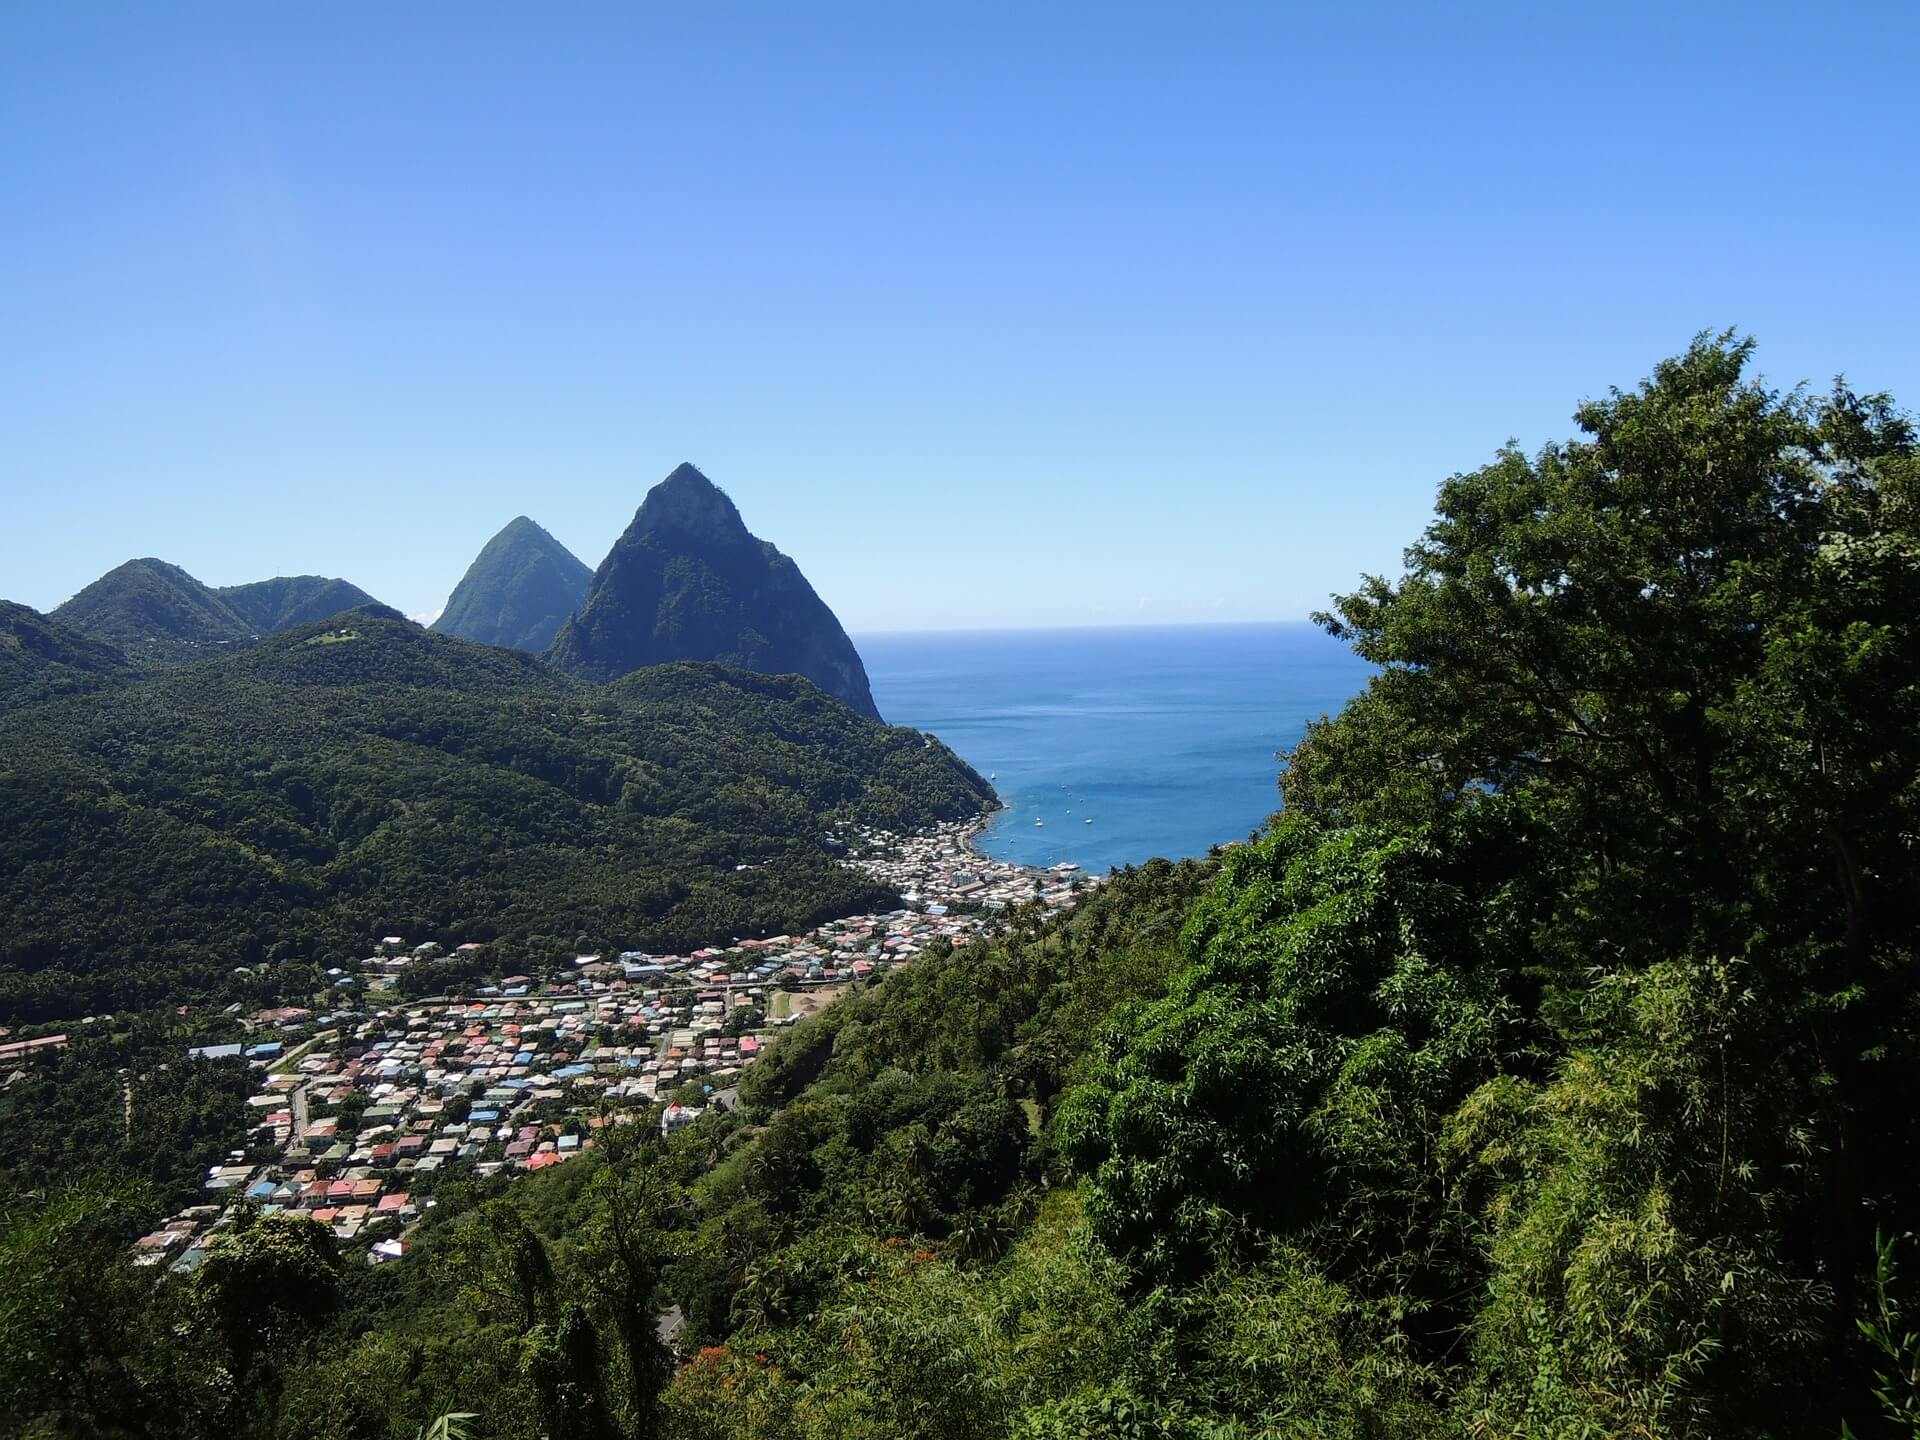 st-lucia-106120_1920